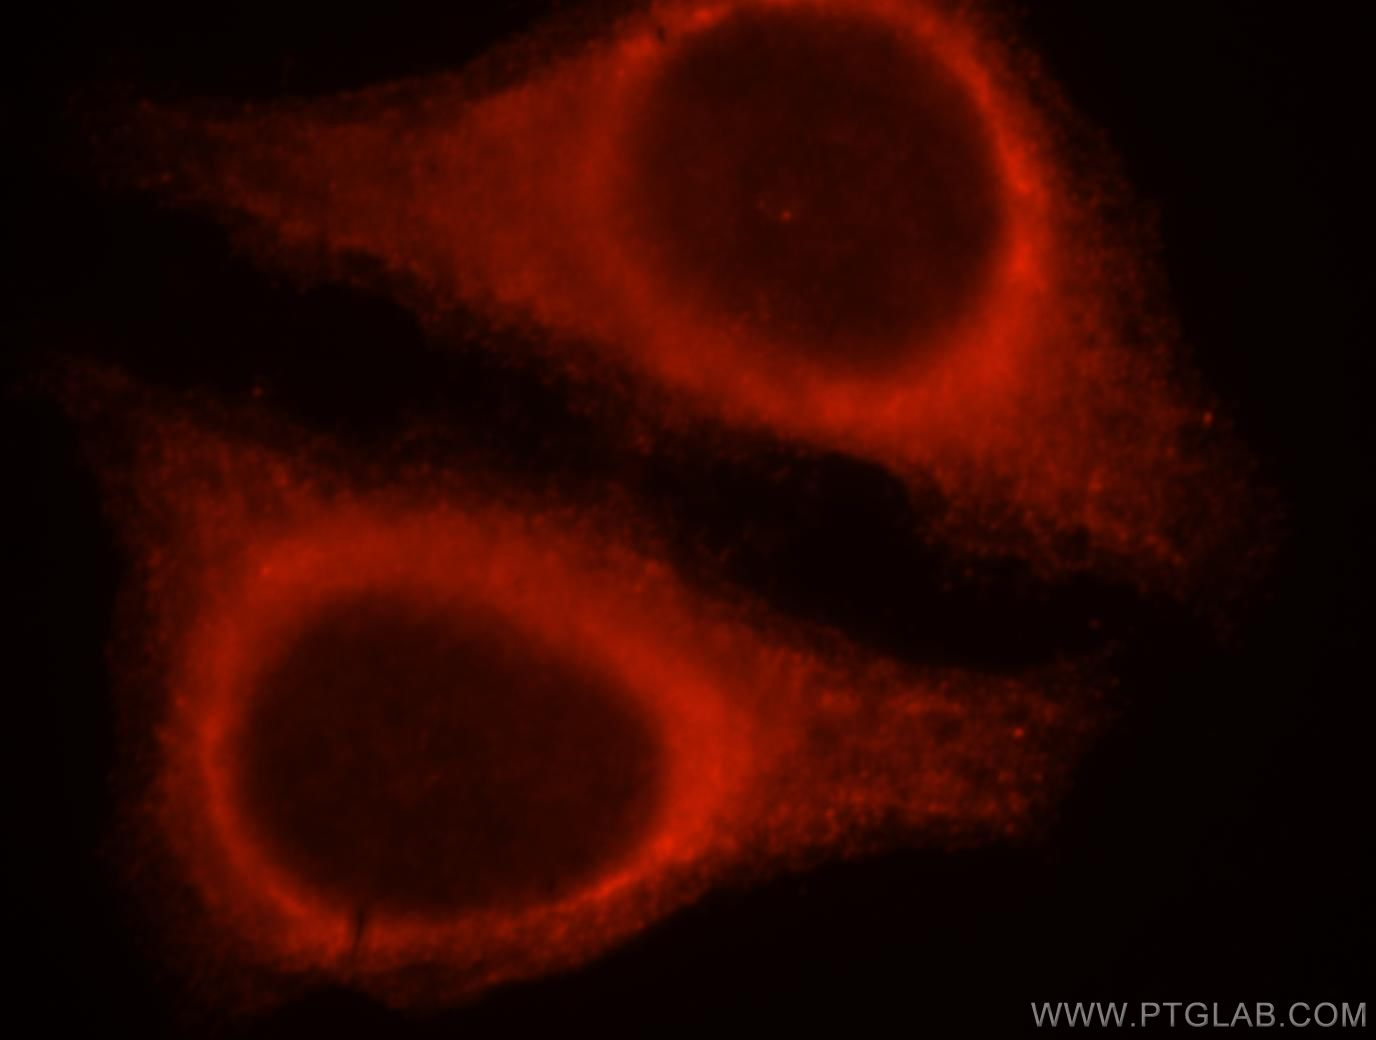 SERPINB13 Immunofluorescence IF 18045-1-AP SERPINB13 Antibody HSHUR7SEQ; HUR7; MGC126870; PI13; headpin